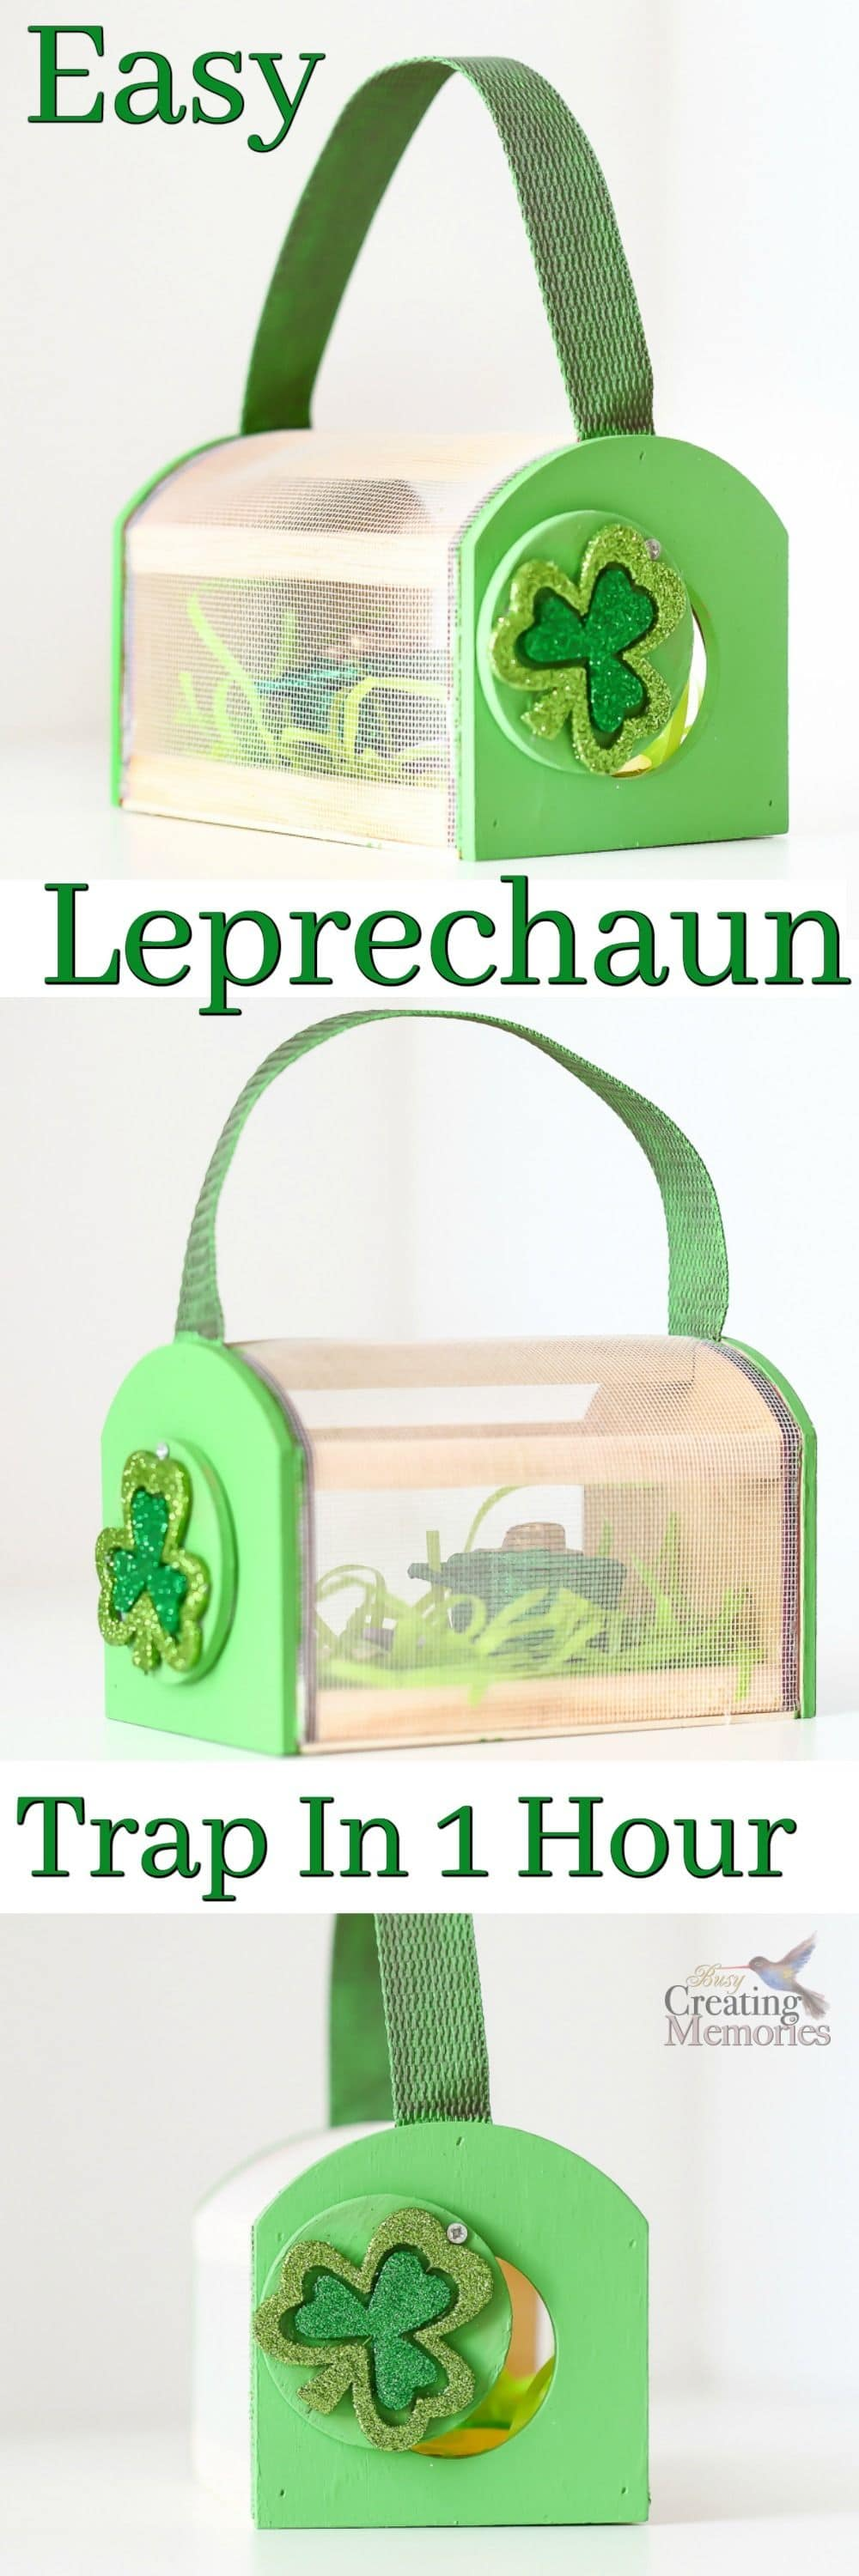 Bring the magic of St Patricks Day to life with our Easy Leprechaun Trap project for kids! Step-by-step directions on how to build an awesome leprechaun trap in under an hour! Especially great idea when you have a Mom fail like I did and forget about the school projects due the next day!